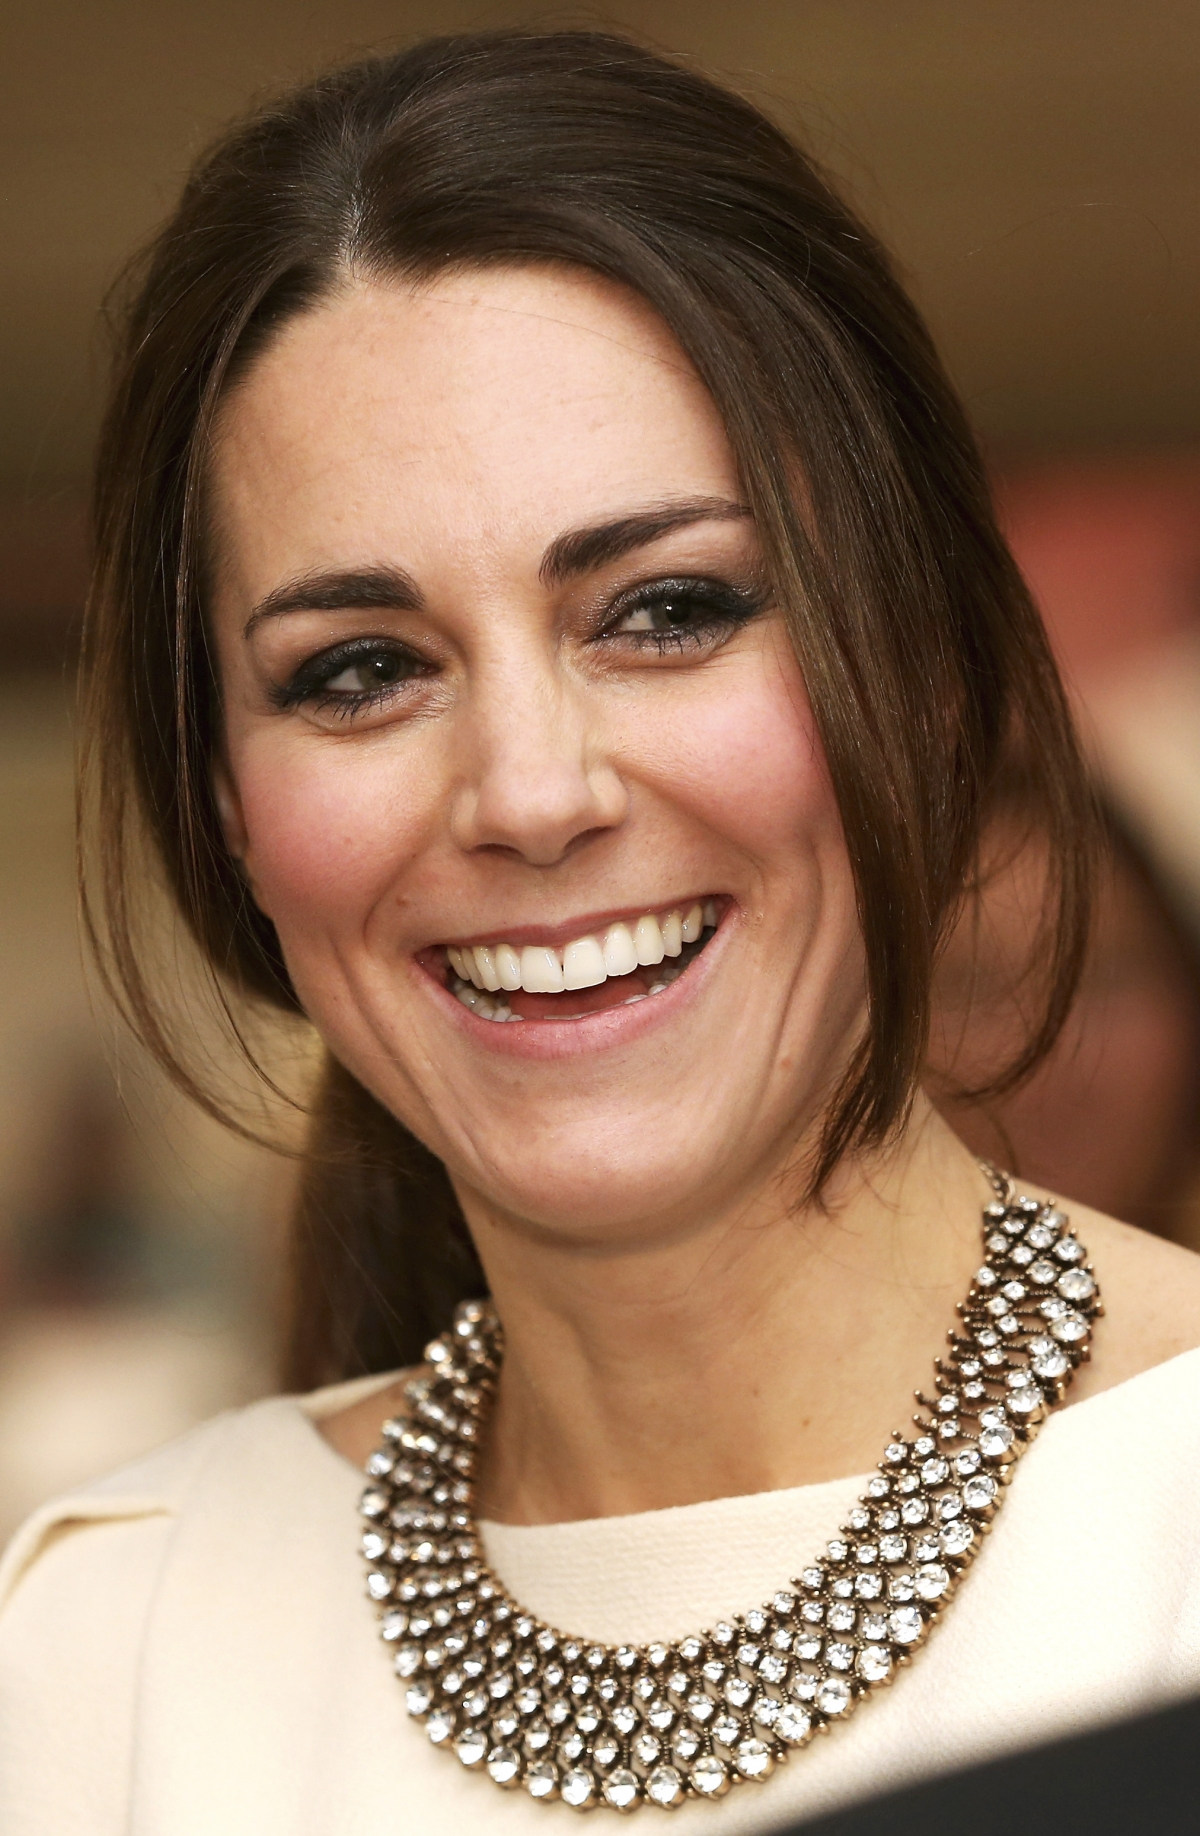 """Catherine, the Duchess of Cambridge at the Royal Premiere of """"Mandela: Long Walk to Freedom"""" in London"""